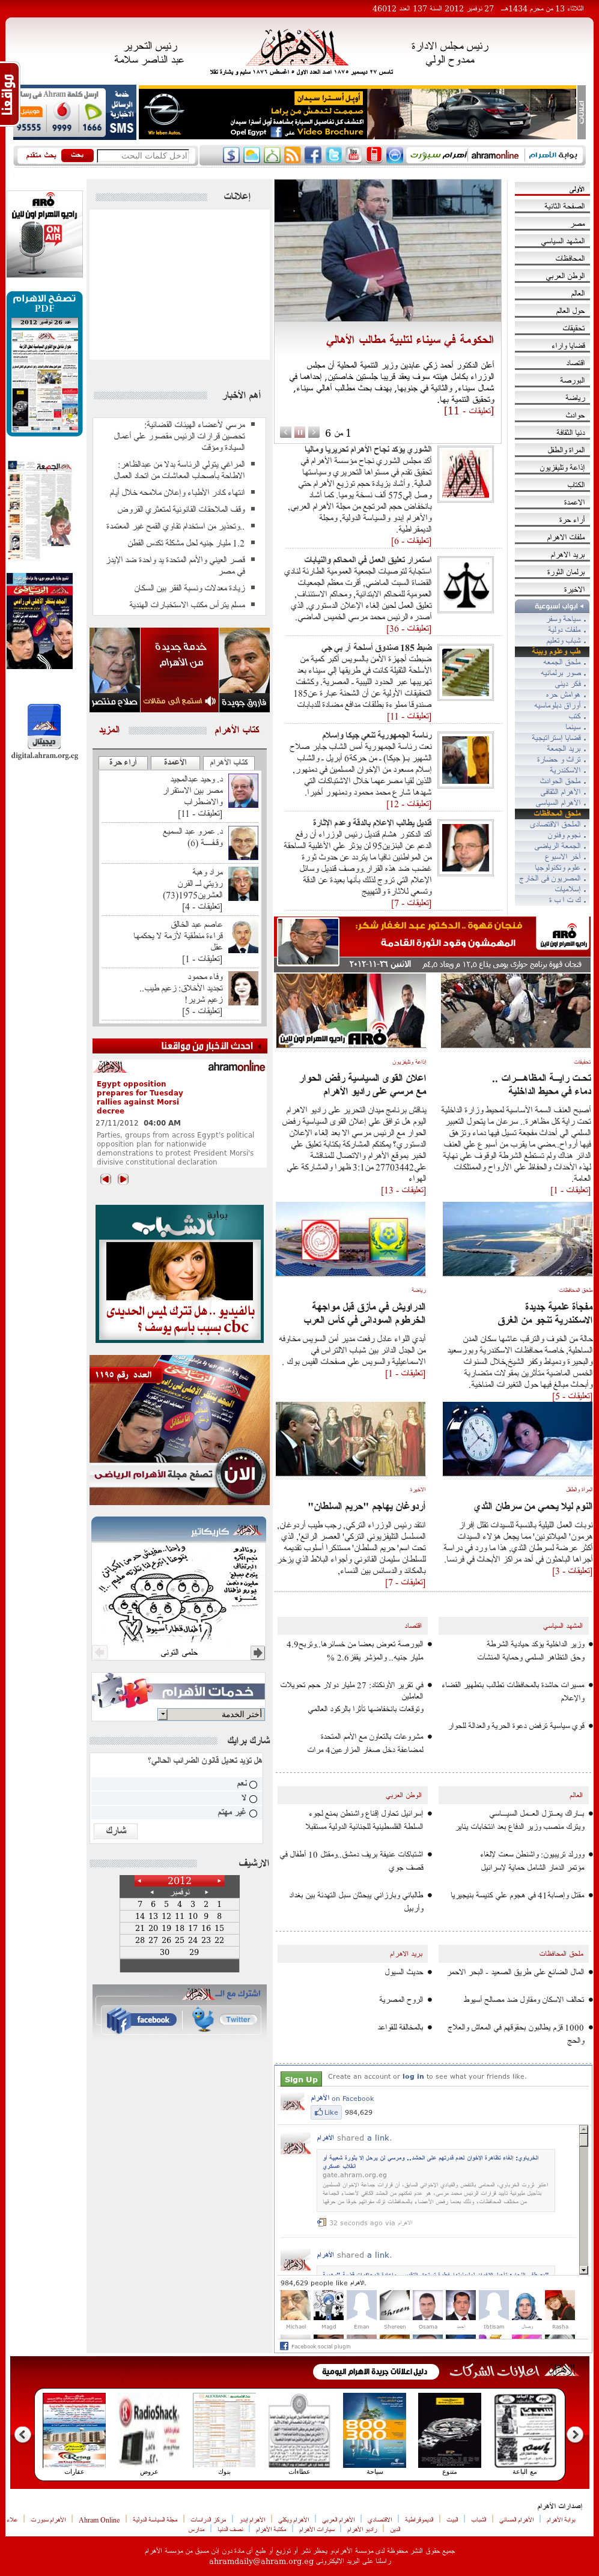 Al-Ahram at Tuesday Nov. 27, 2012, 7 a.m. UTC